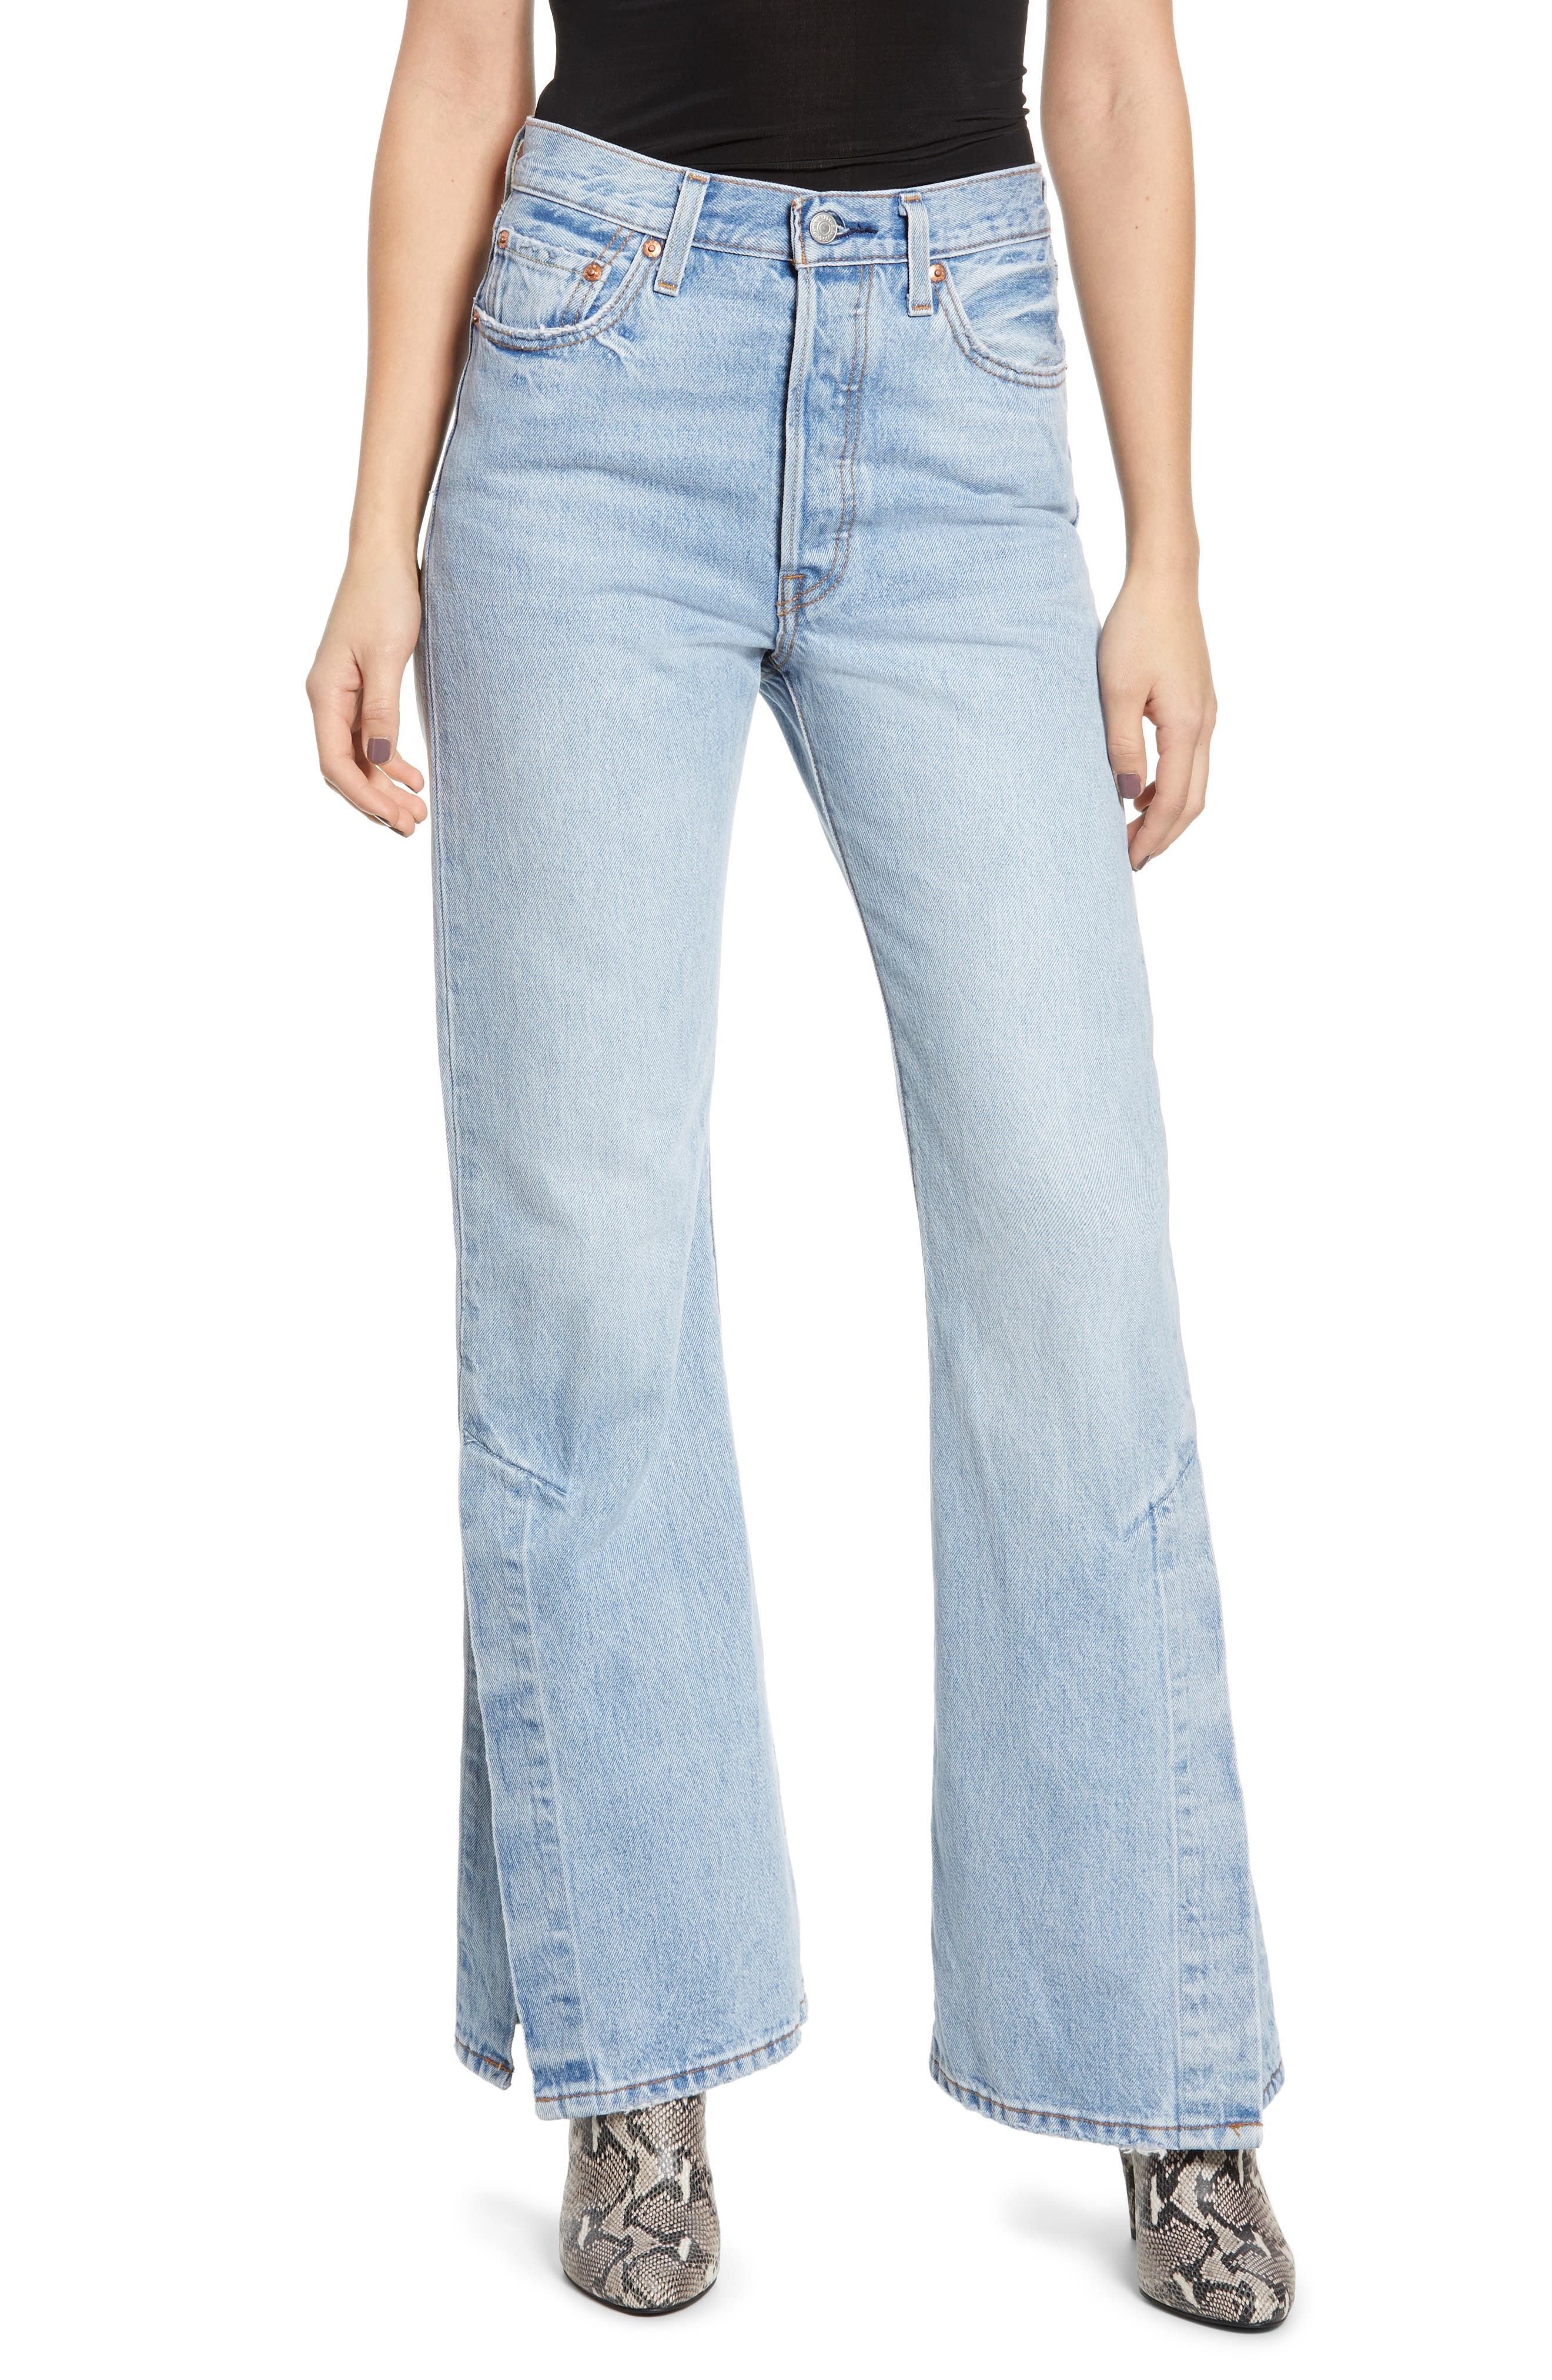 LEVI'S<SUP>®</SUP> Ribcage Super High Waist Split Flare Jeans, Main, color, DAZED AND CONFUSED